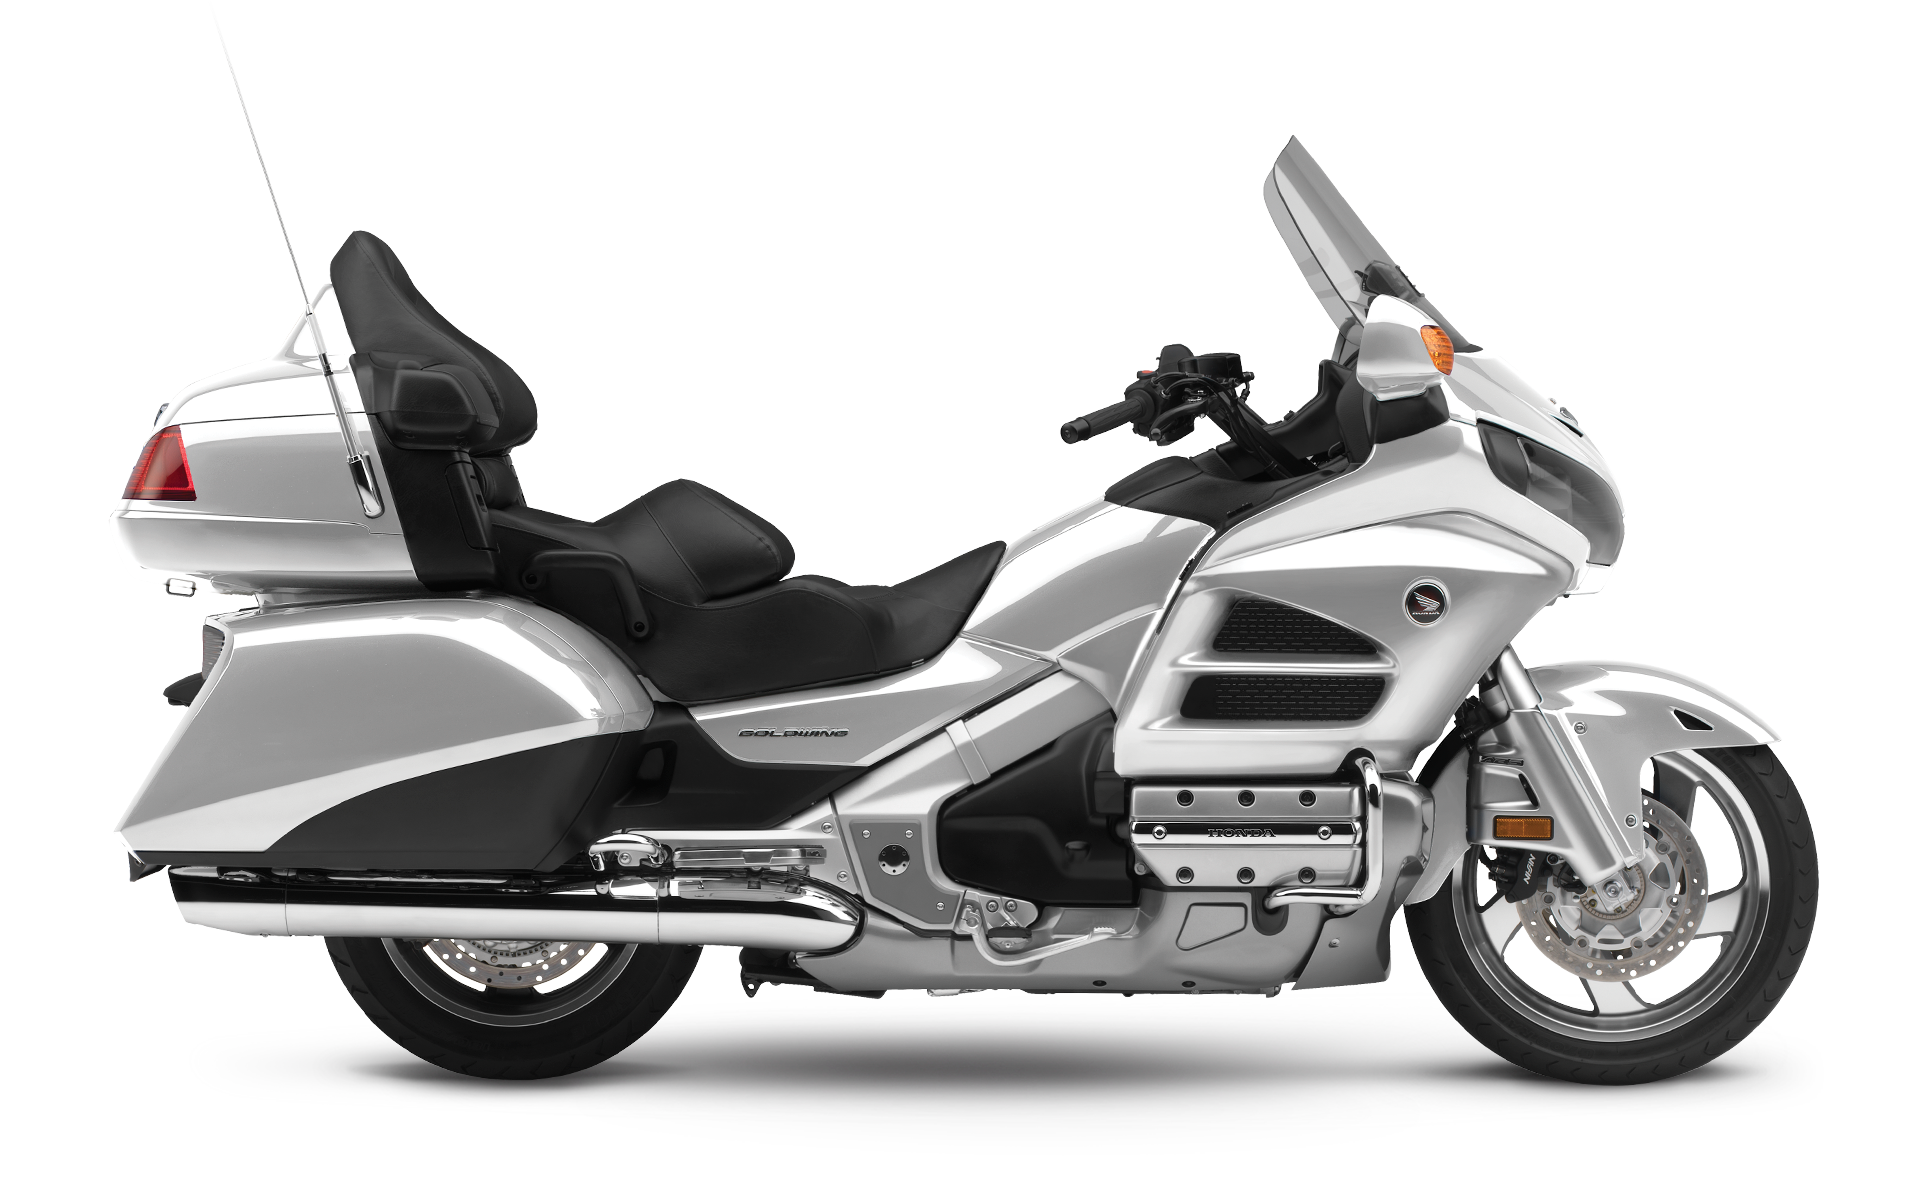 29 New 2019 Honda Goldwing Colors Images for 2019 Honda Goldwing Colors